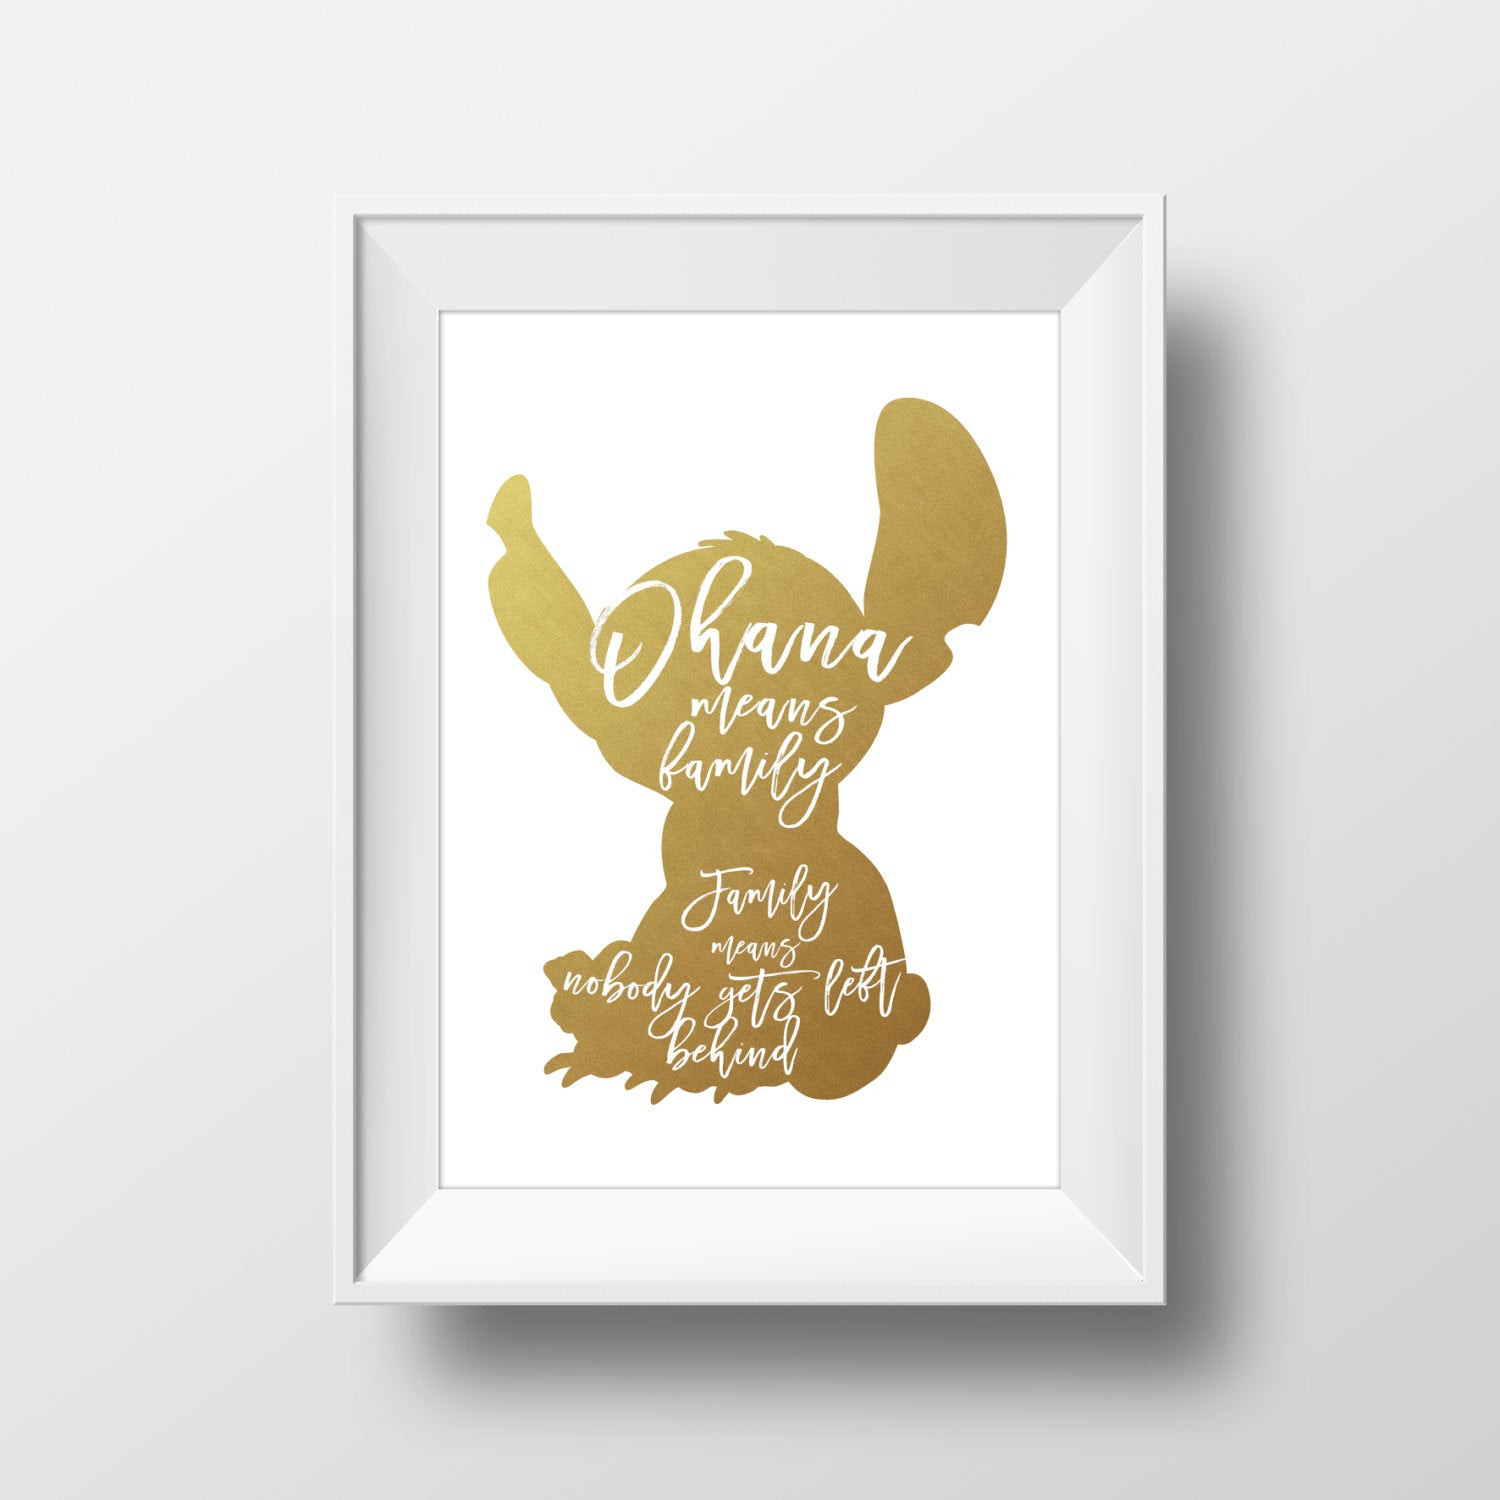 Best ideas about Disney Wall Art . Save or Pin Wall Art Disney Print Stitch GoldLilo and StitchDisney Now.